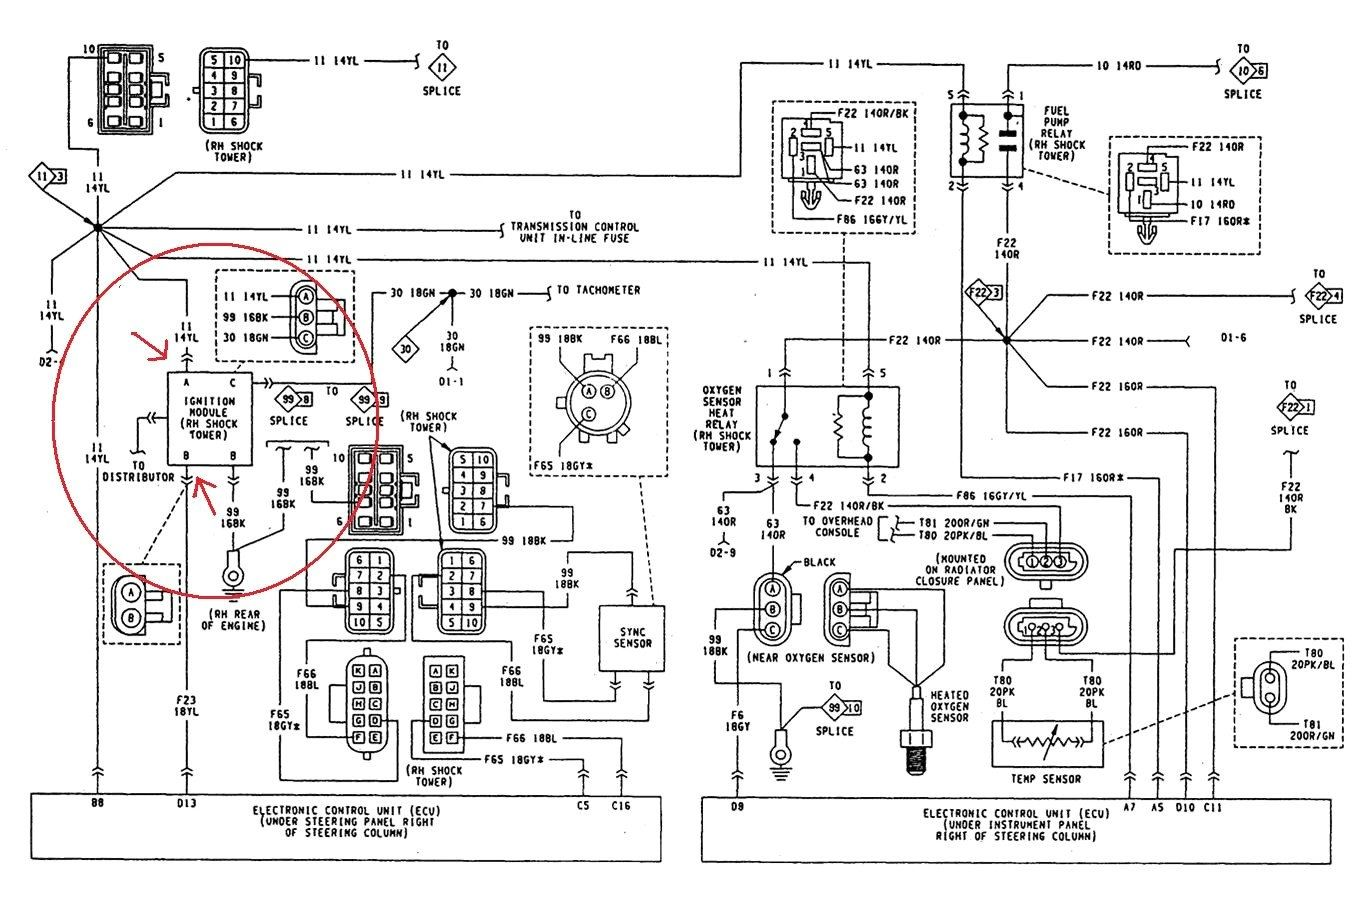 medium resolution of 1990 jeep yj vacuum diagram wiring diagram name 1990 jeep cherokee vacuum diagram 1990 jeep vacuum diagram